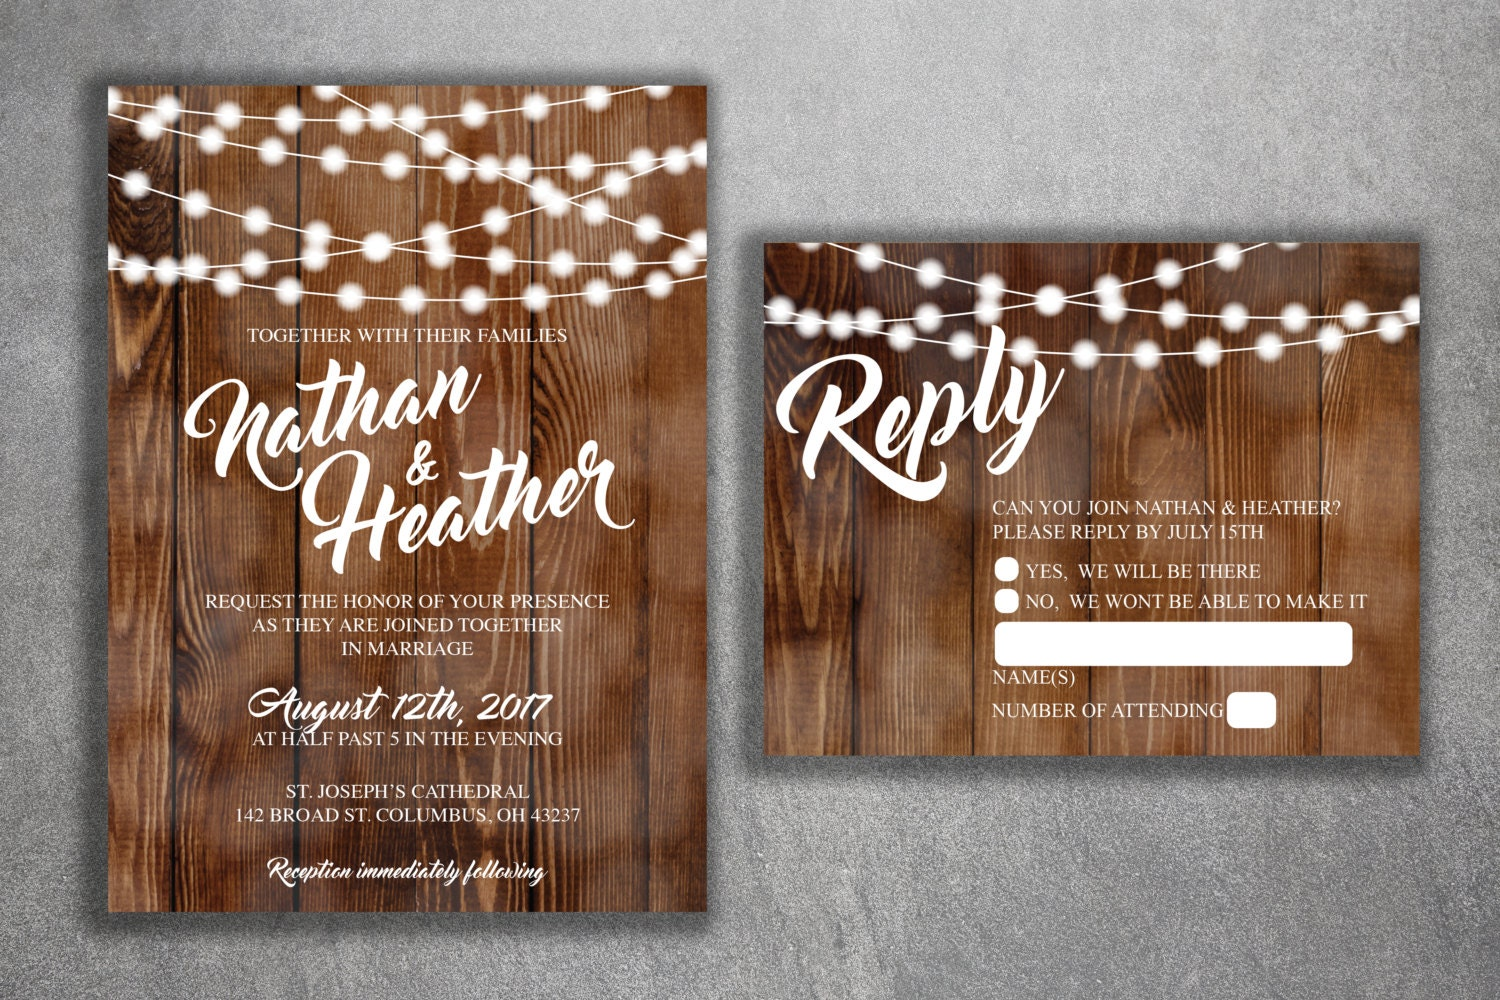 Rustic Photo Wedding Invitations: Country Wedding Invitations Set Printed Rustic Wedding